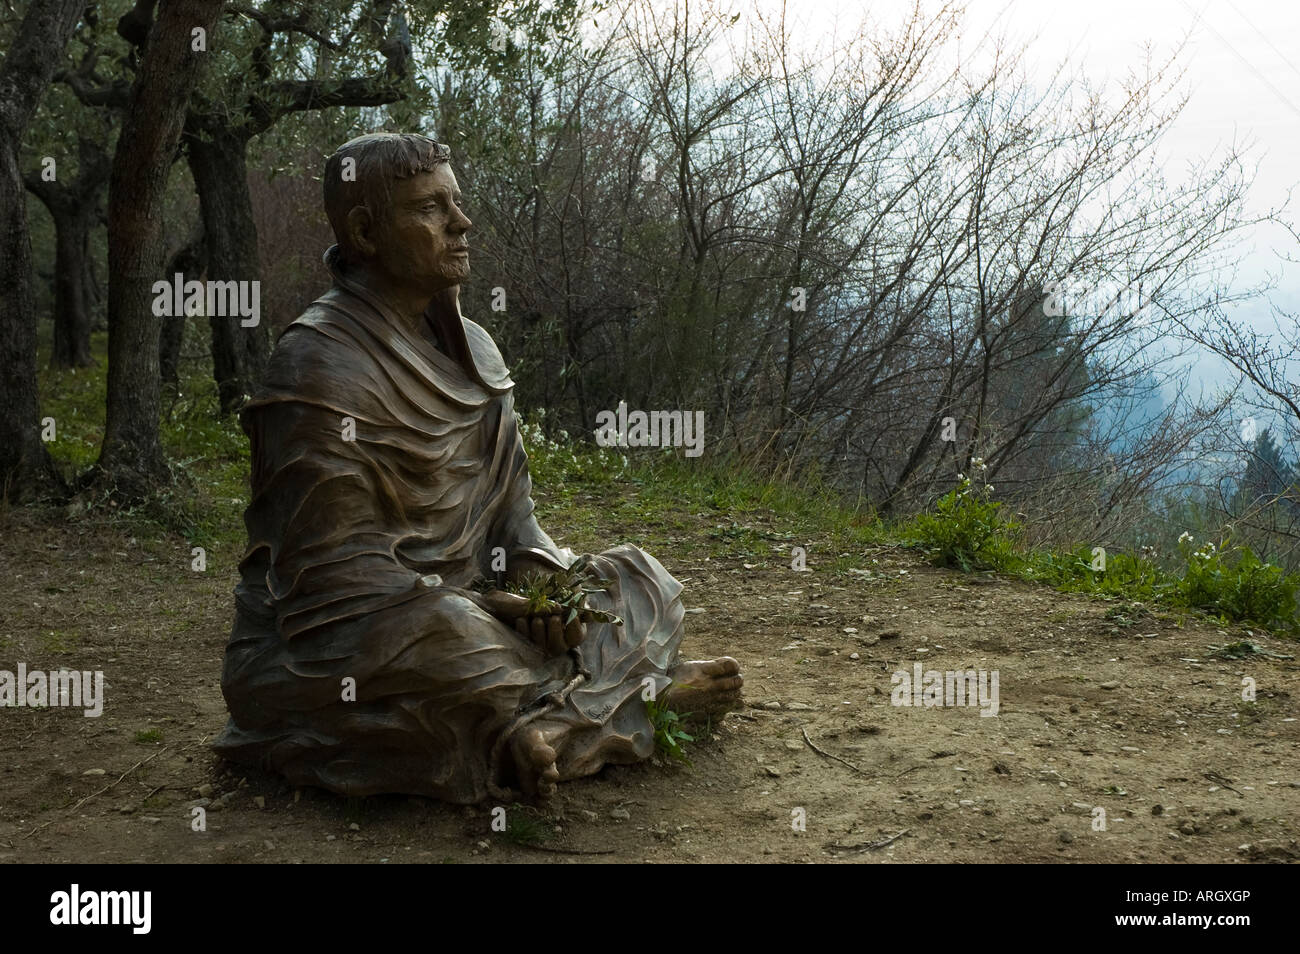 The bronze sculpture of Saint Francis in meditation made from the Italian artist Fiorenzo Bacci - Stock Image